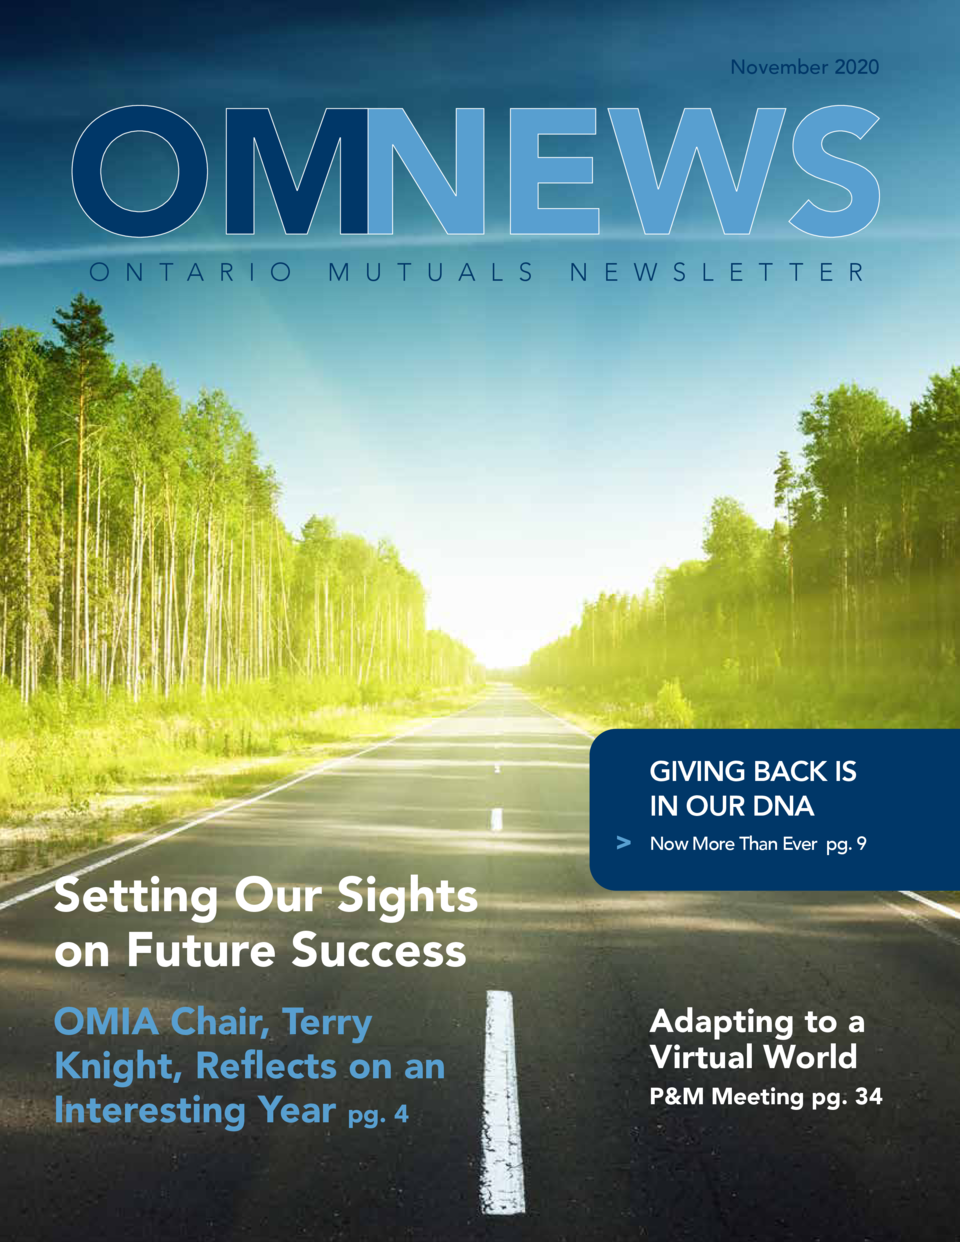 November 2020  O N T A R I O  M U T U A L S  Setting Our Sights on Future Success OMIA Chair, Terry Knight, Reflects on an...